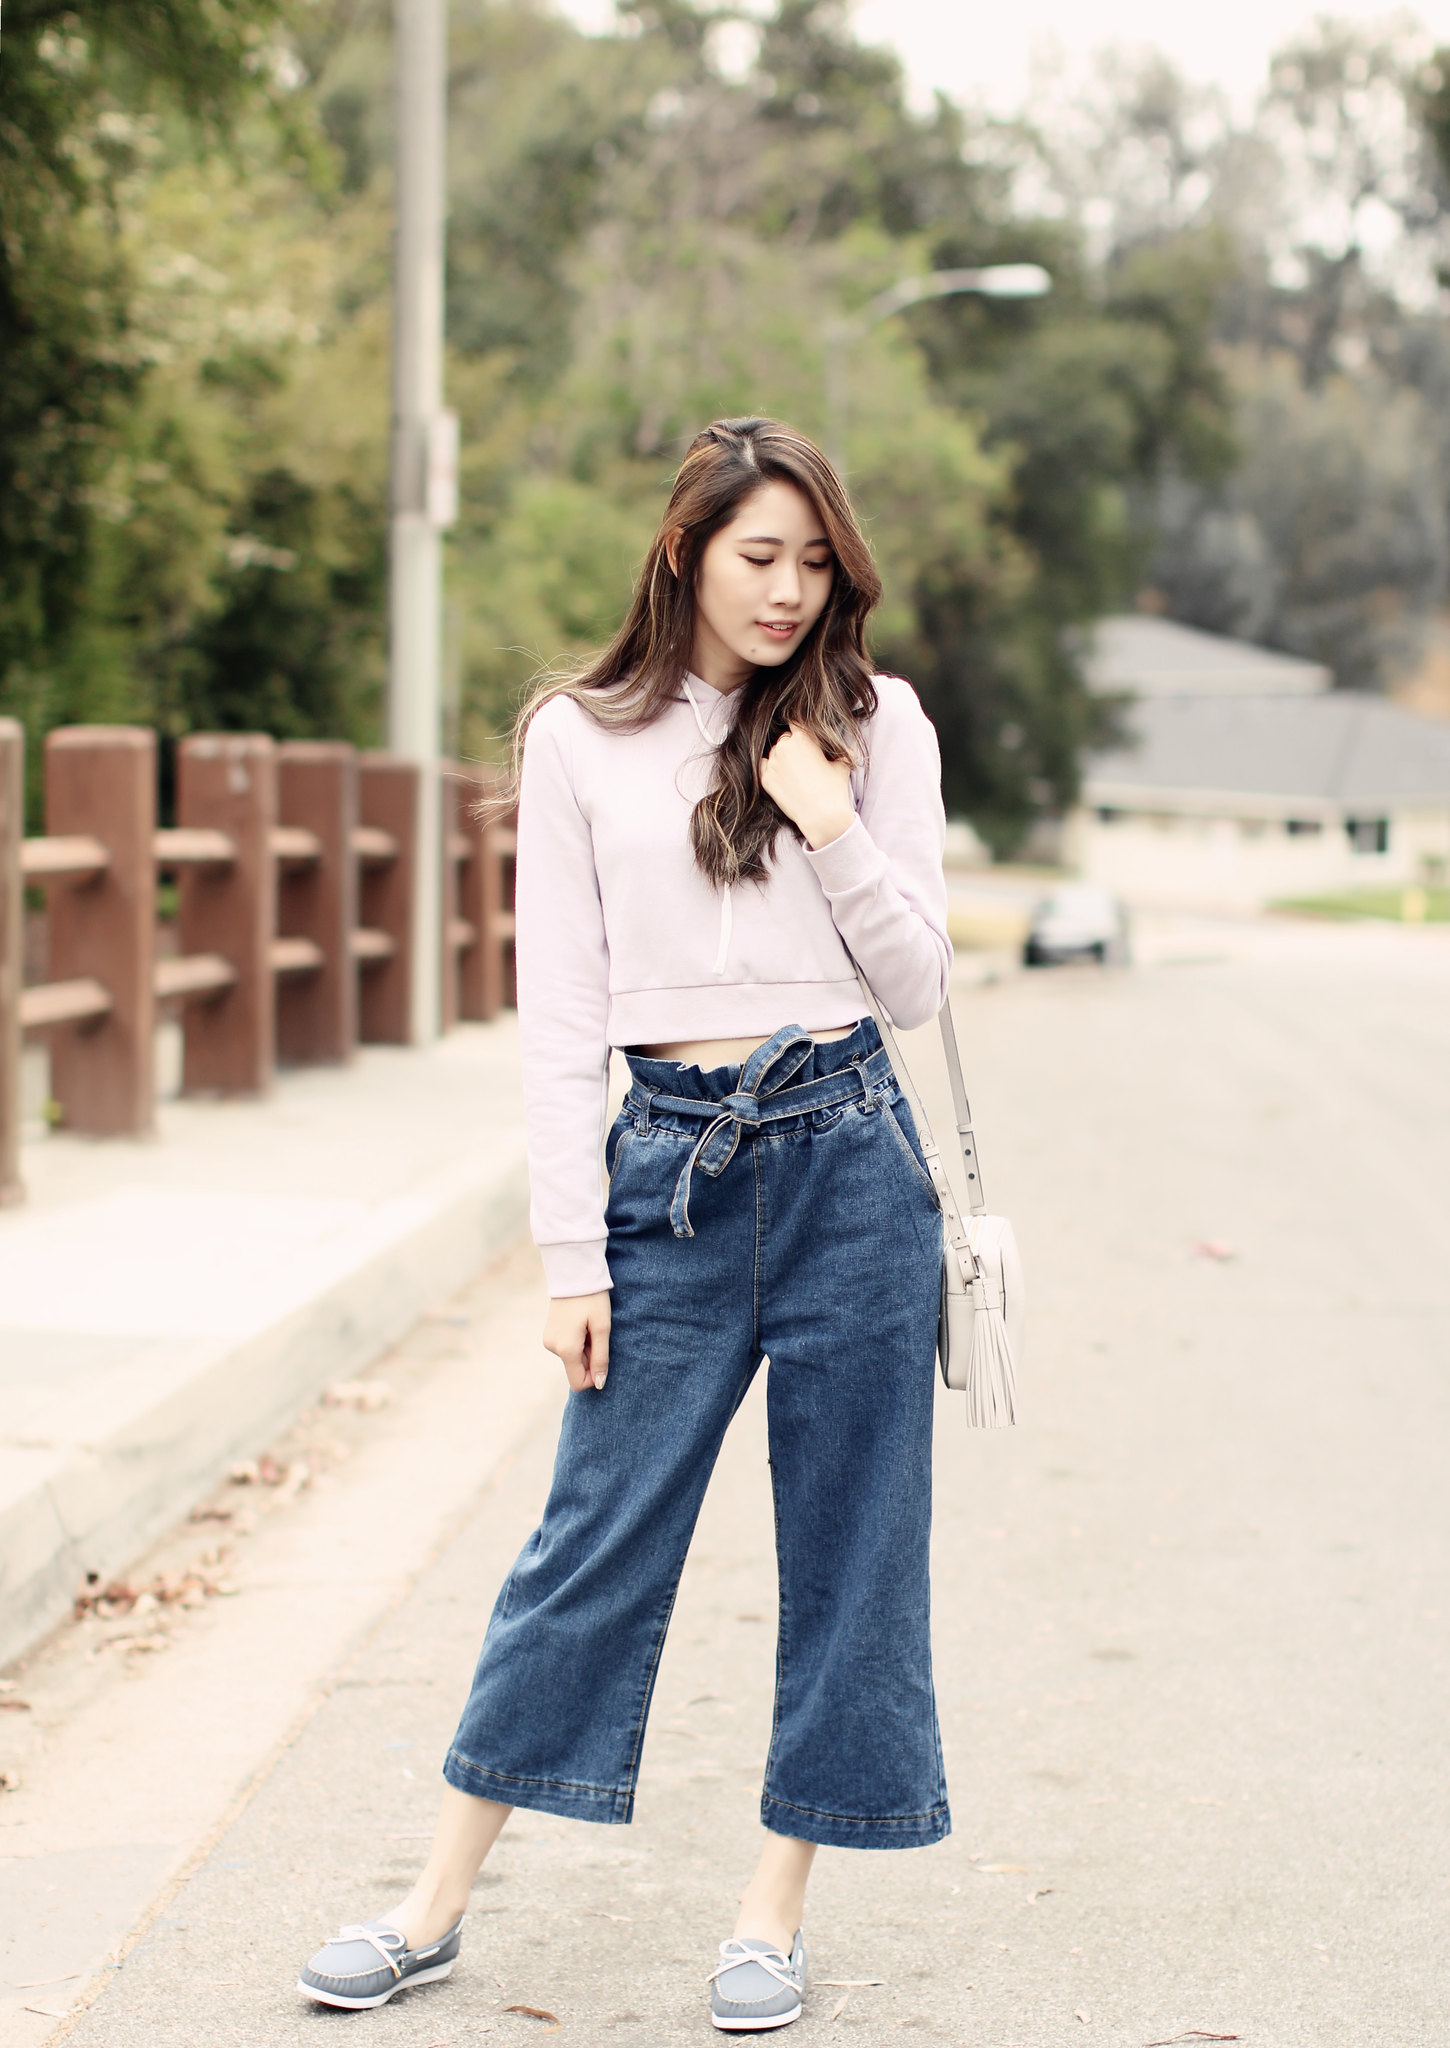 5055-ootd-fashion-style-outfitoftheday-wiwt-streetstyle-zara-f21xme-denim-thrifted-guess-koreanfashion-lookbook-elizabeeetht-clothestoyouuu